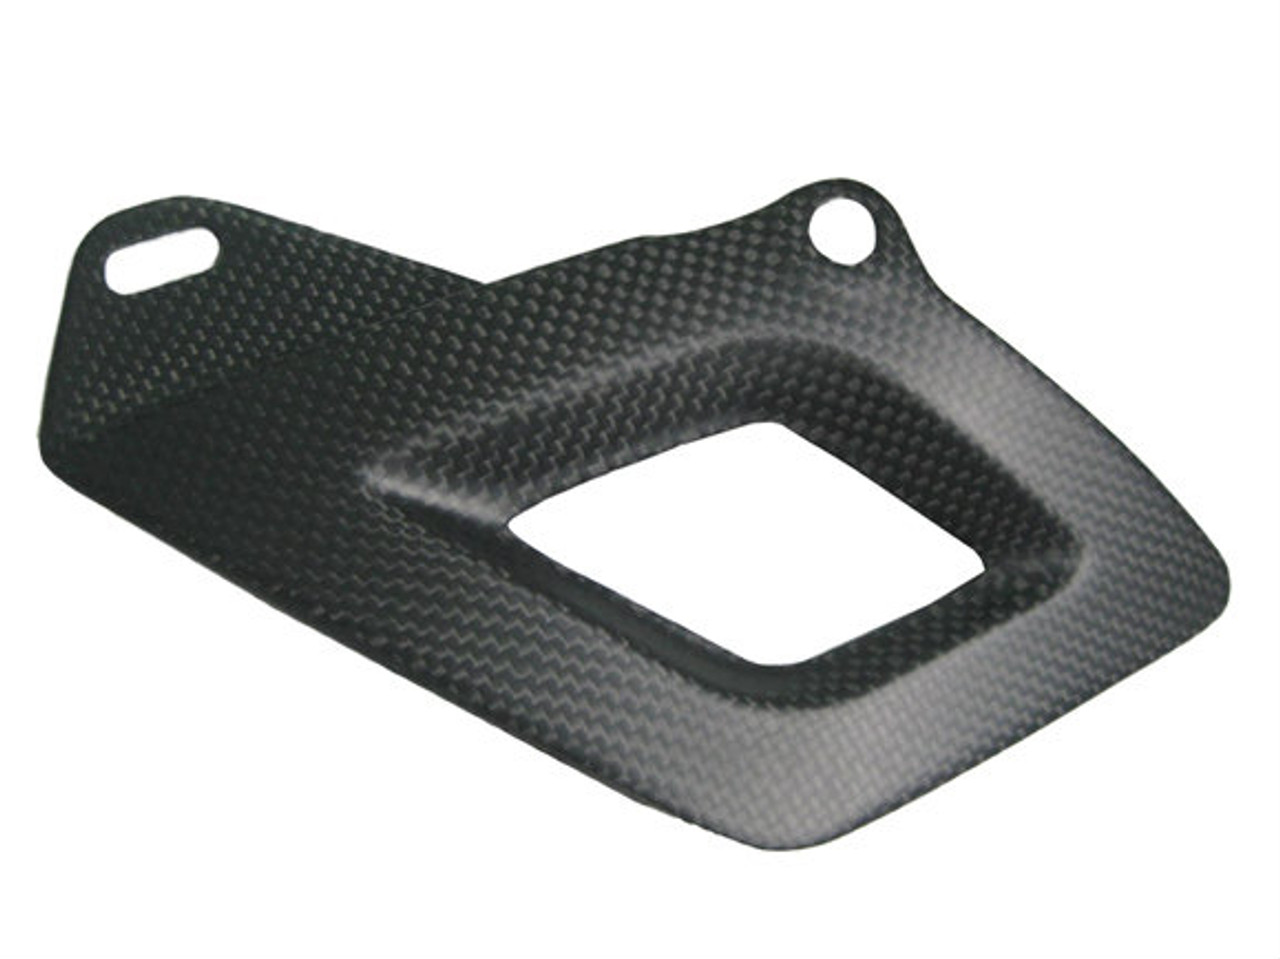 Matte Plain Weave Carbon Fiber Lower Chain Guard for Aprilia RSV4 2009+, Tuono V4 2011+